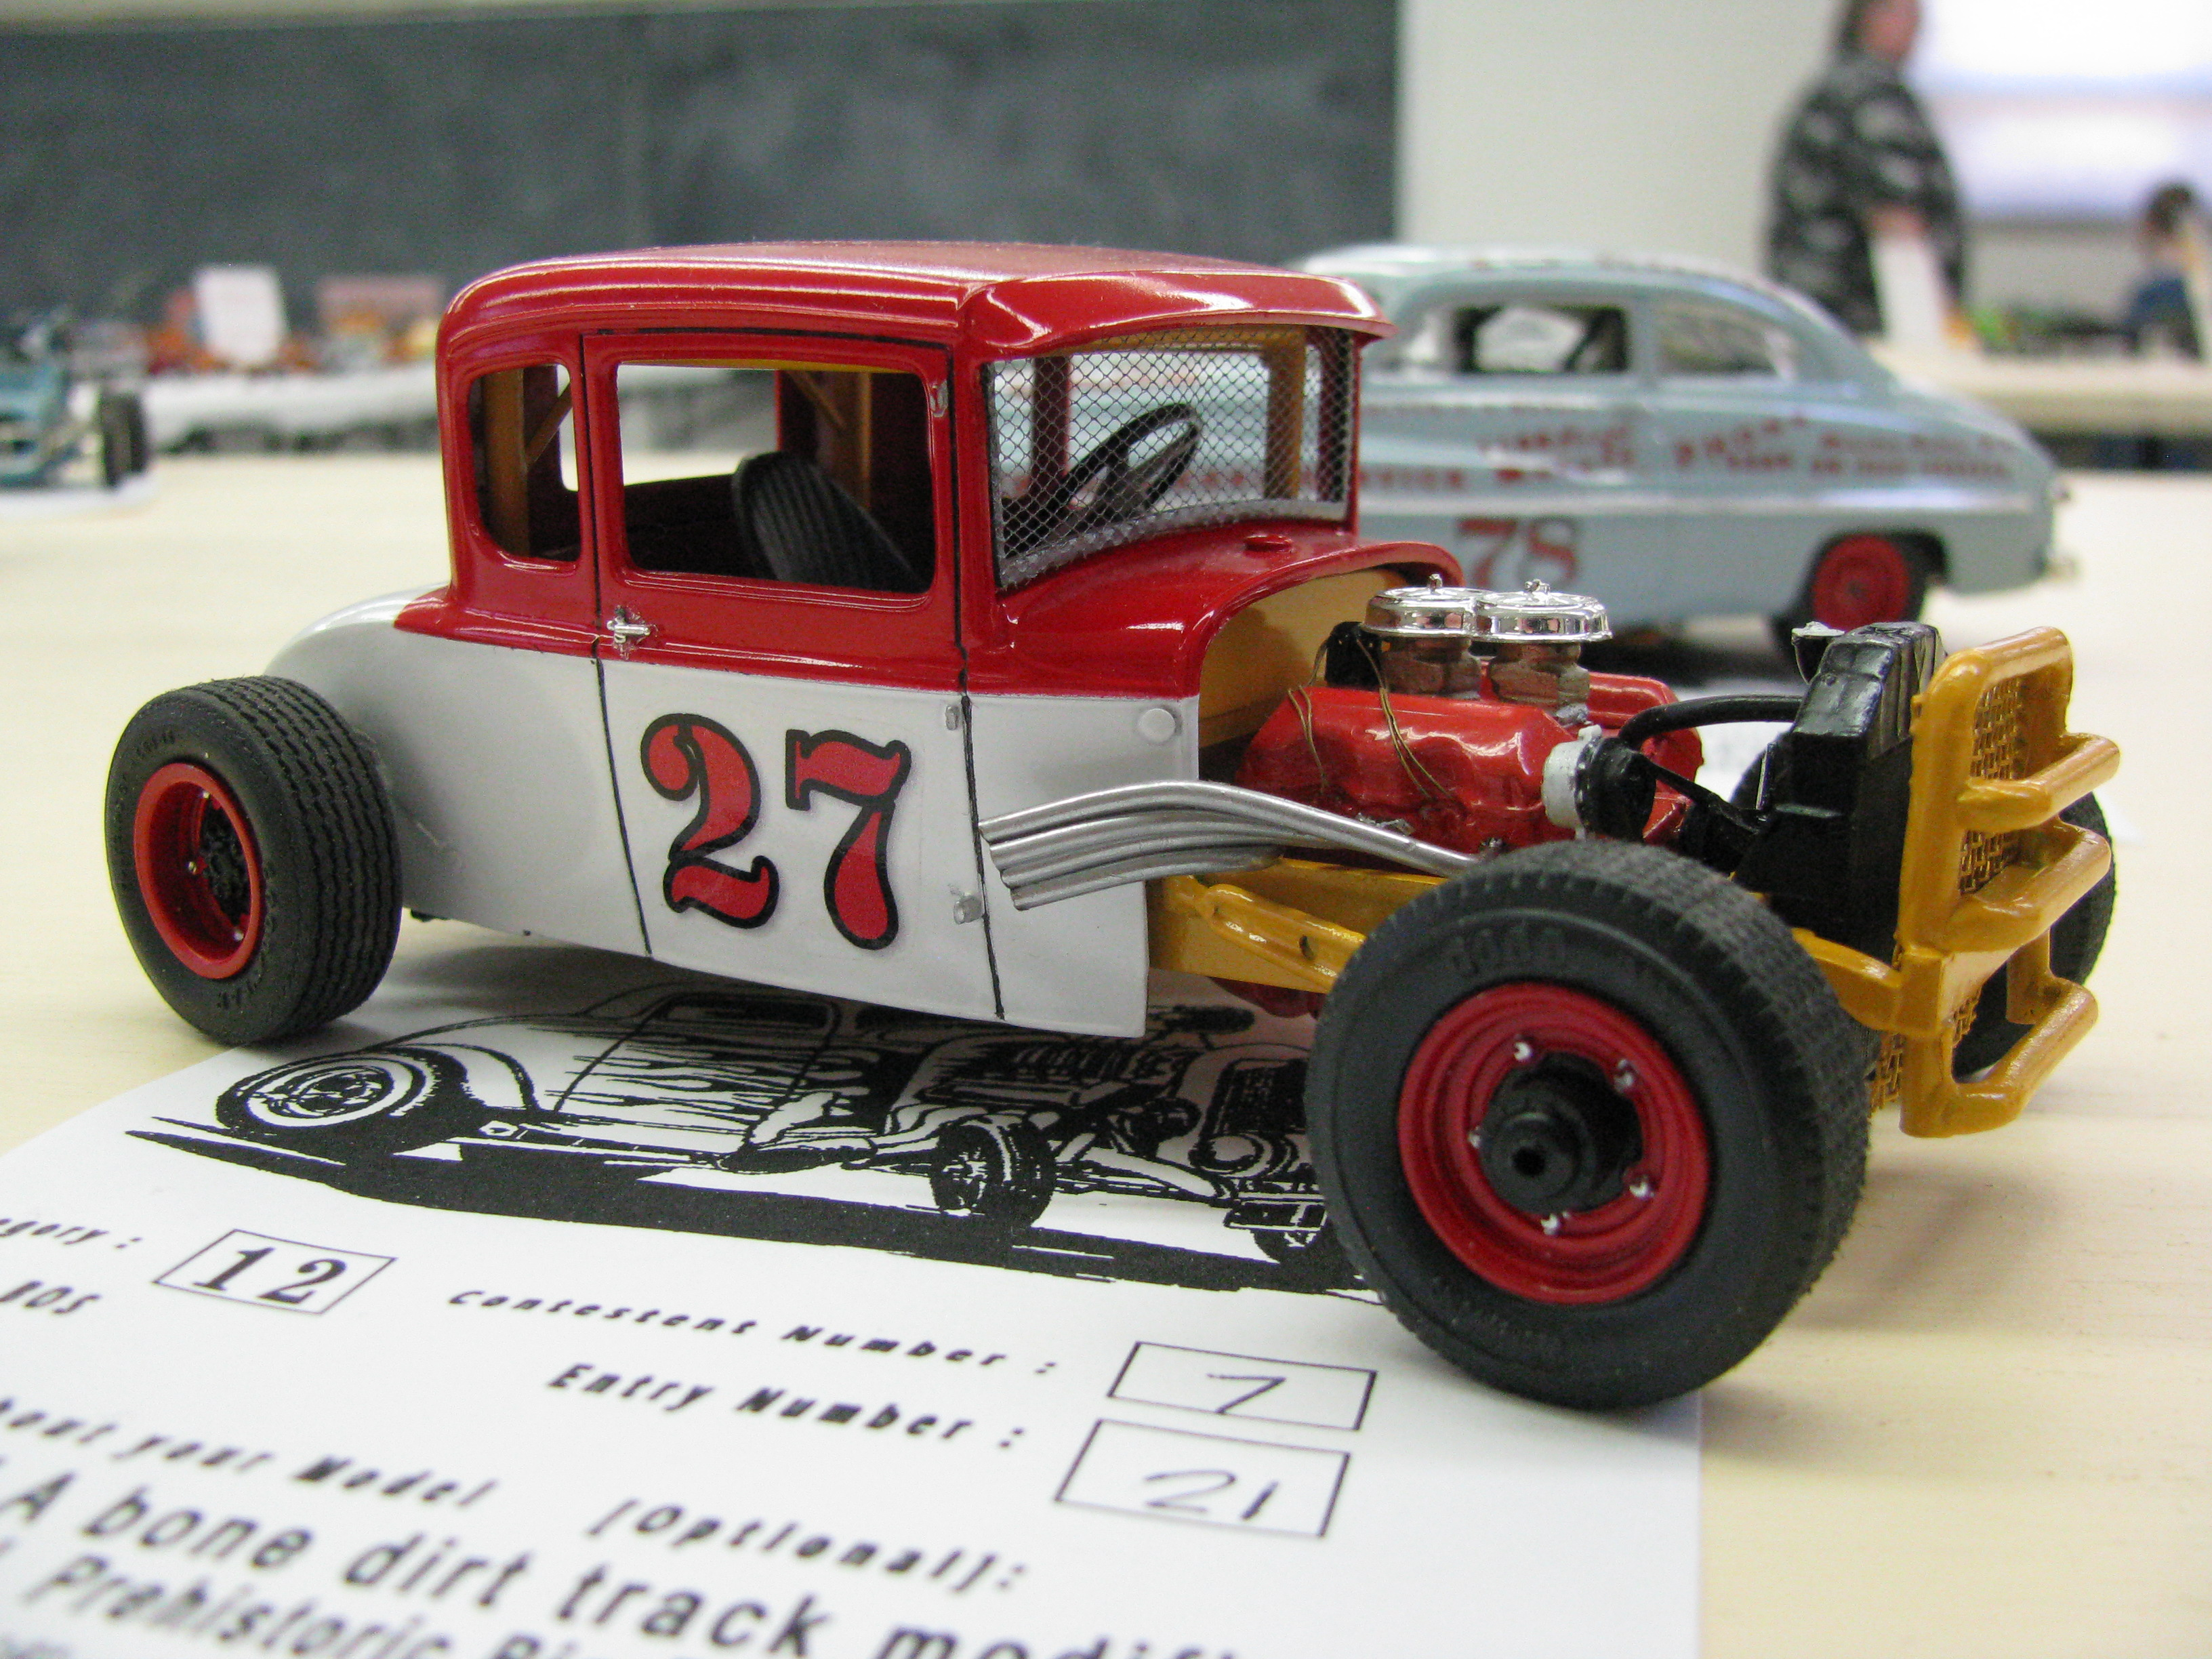 2012 Cedarville Model Car Contest and Swap Meet Photographs - The